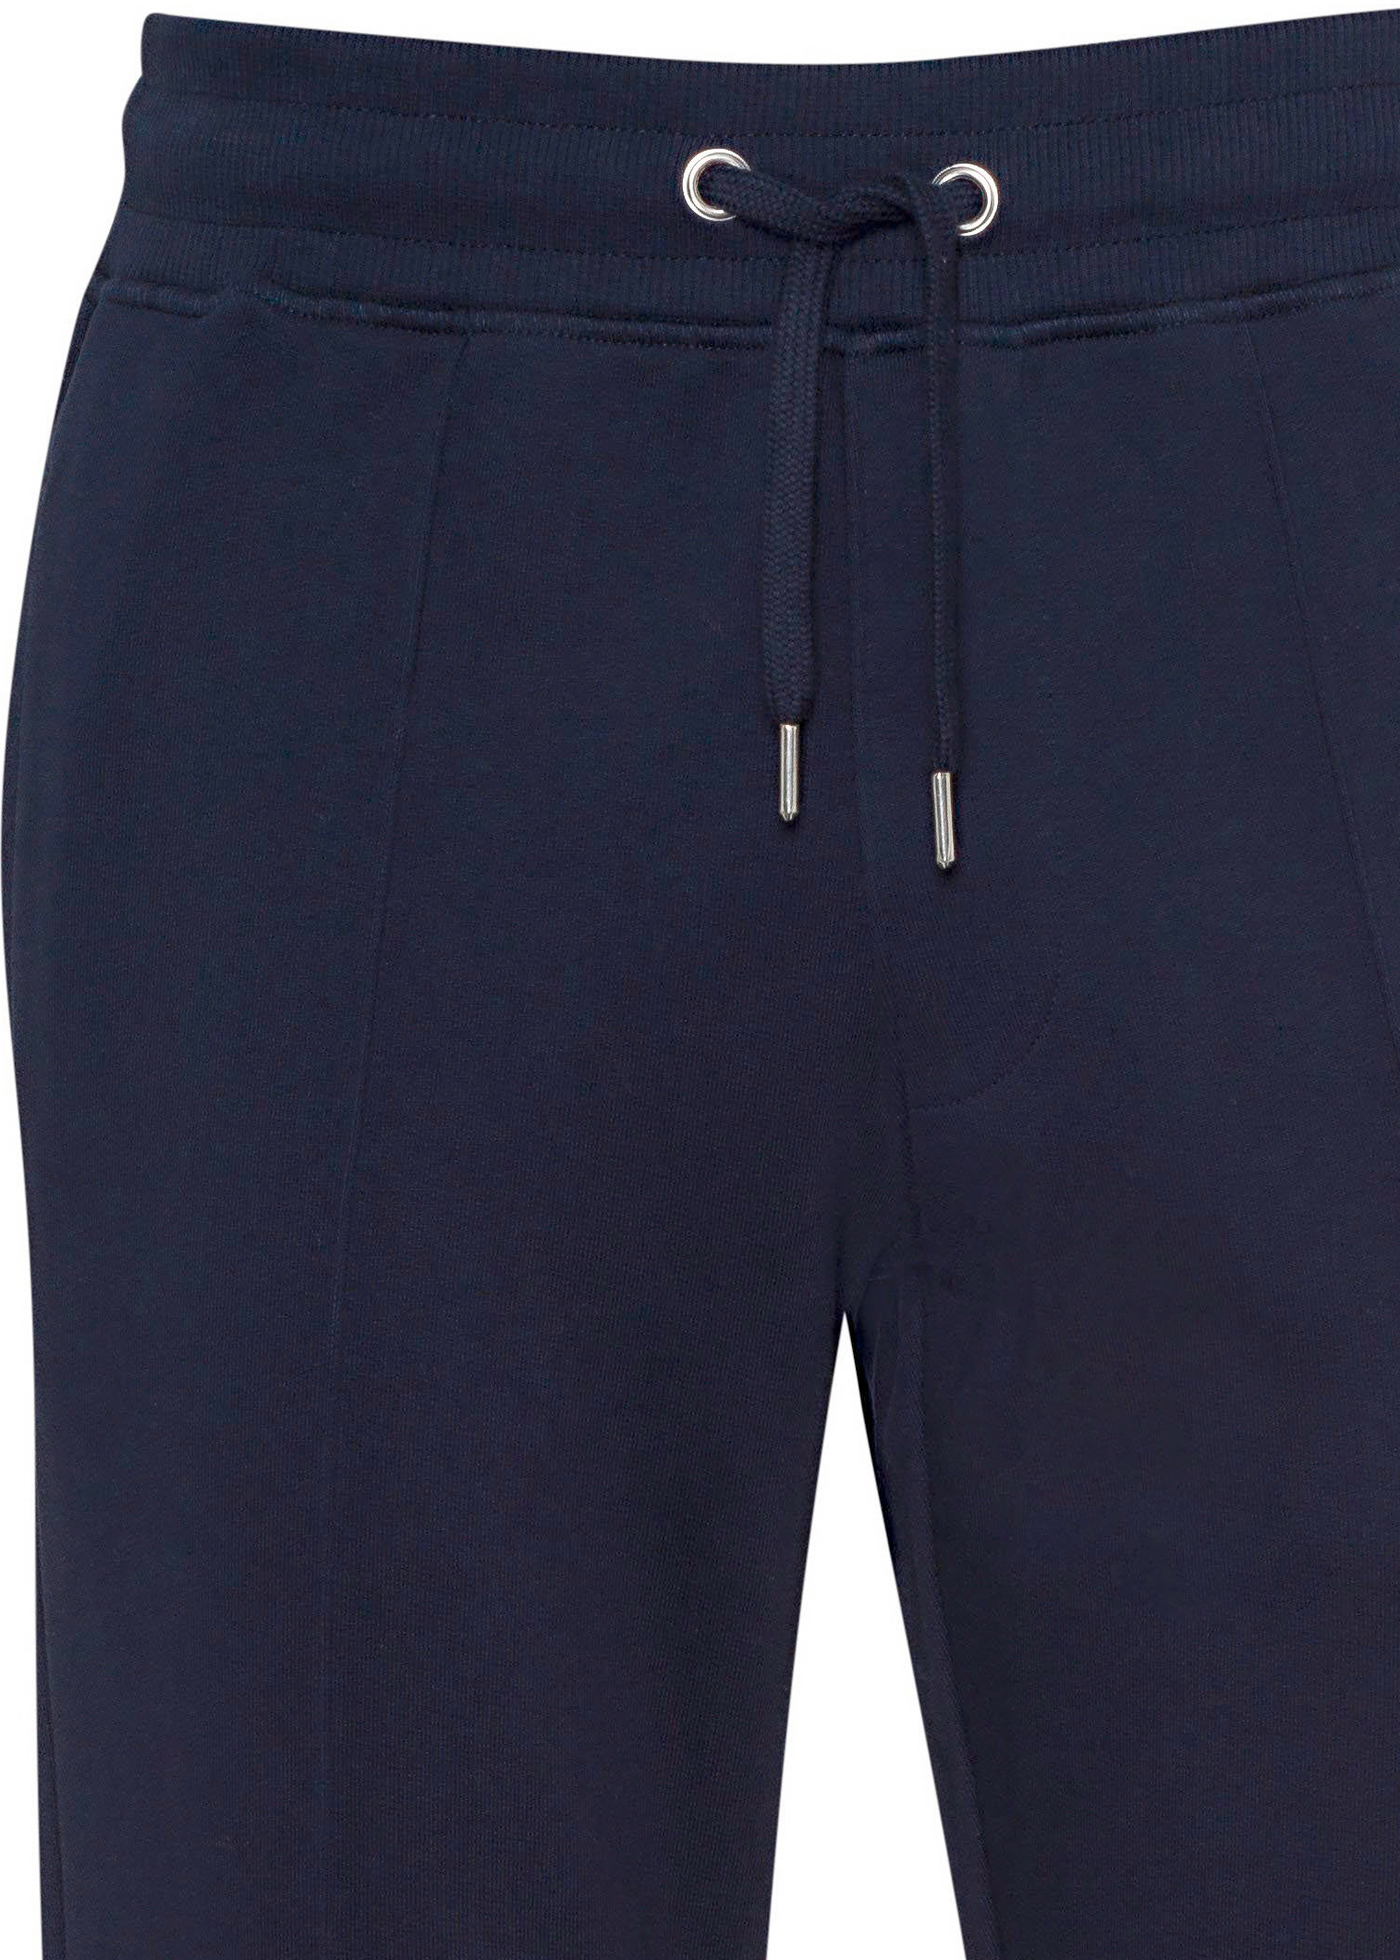 Cotton Jersey Pant image number 2